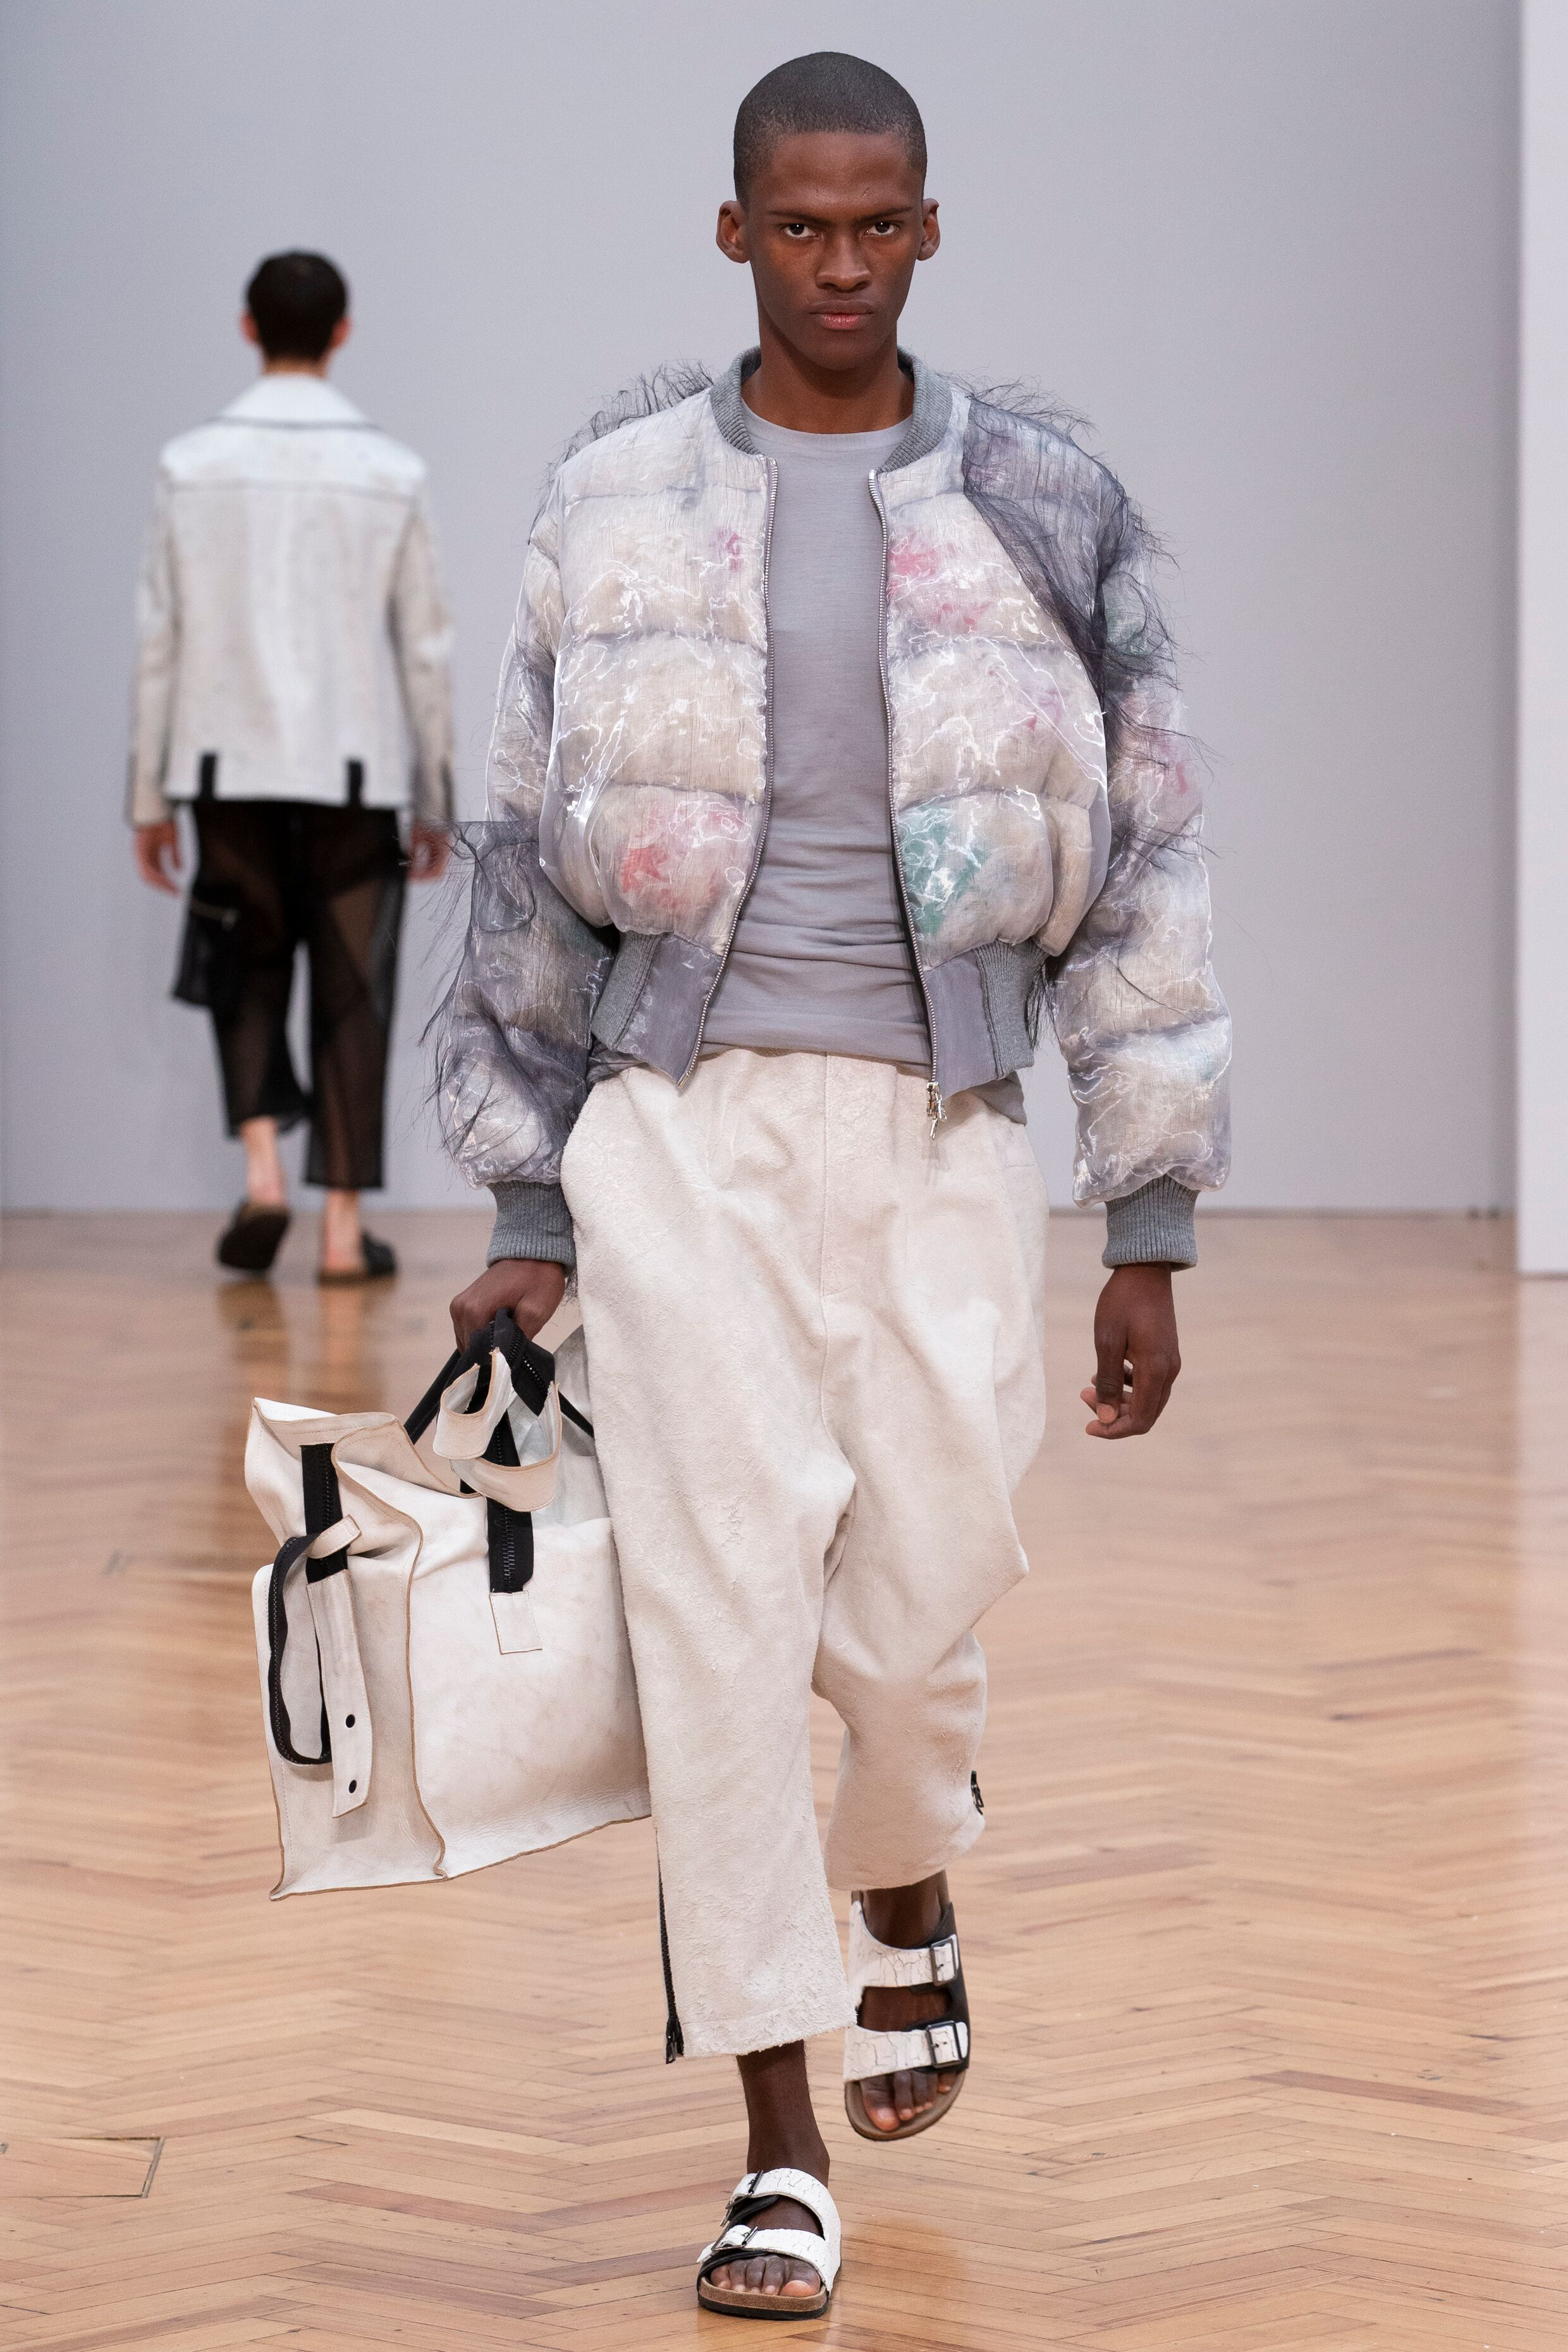 Istituto Marangoni new era fashion show paterned puffer jacket